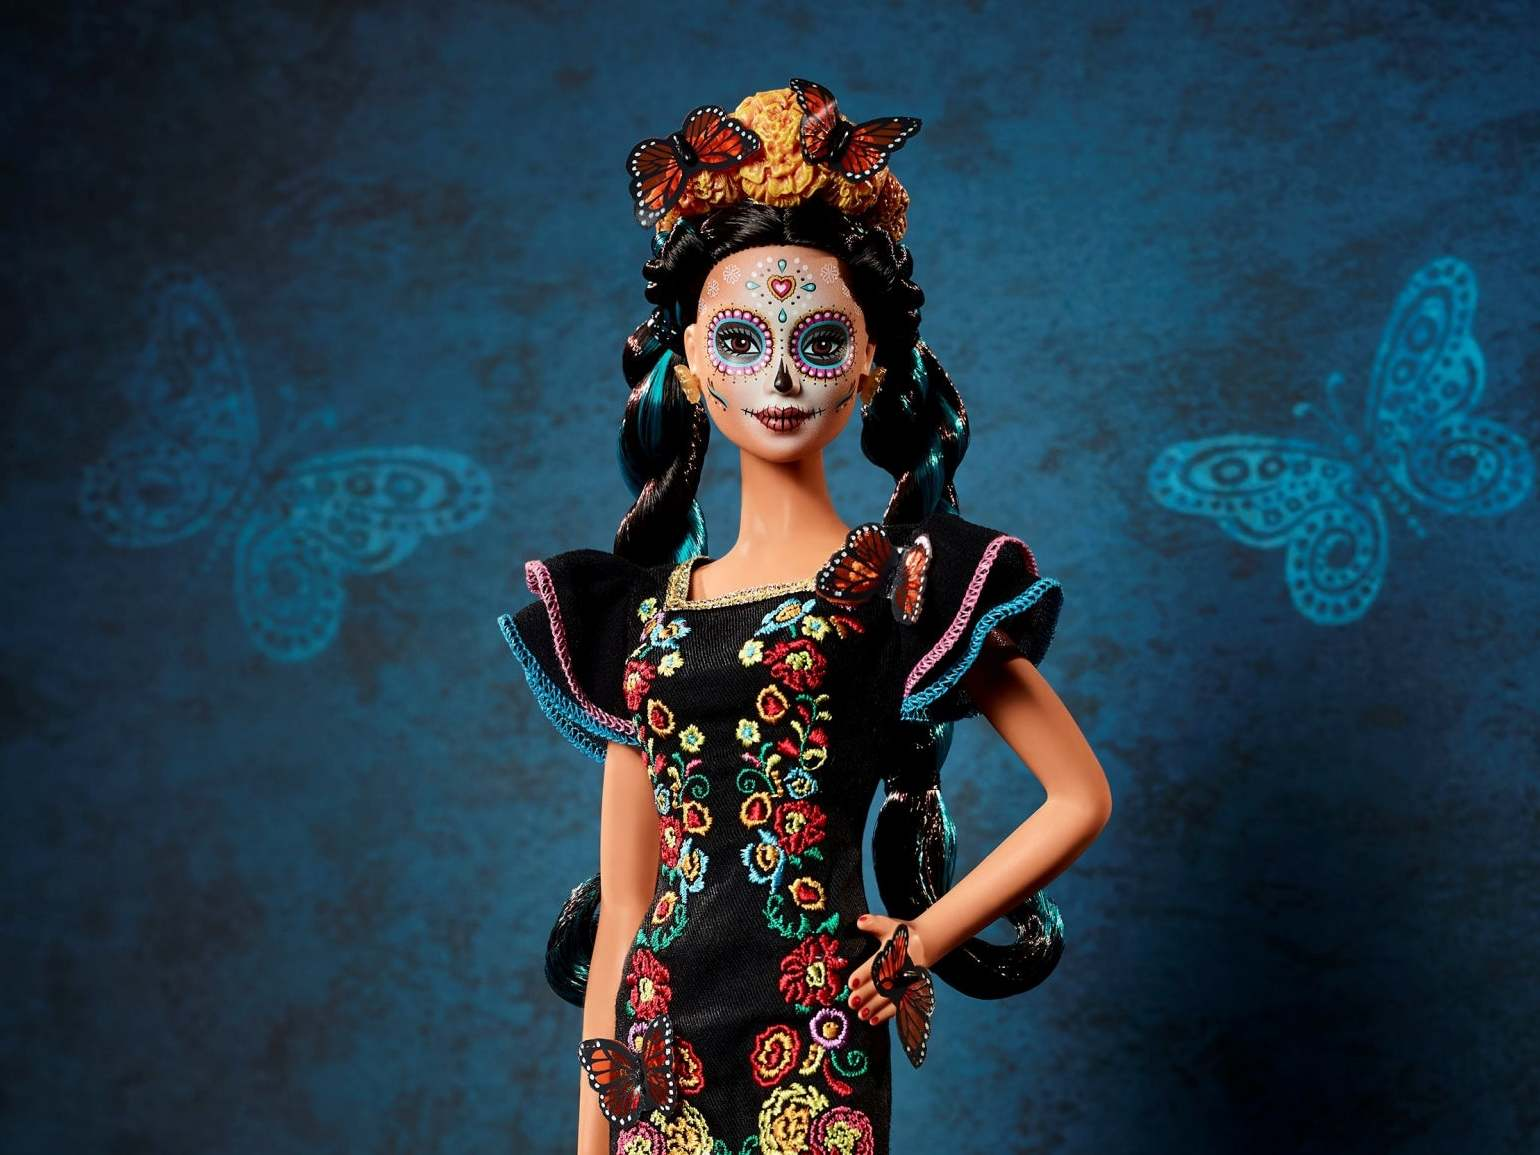 'Day of the Dead' Barbie launches today in celebration of Mexican holiday